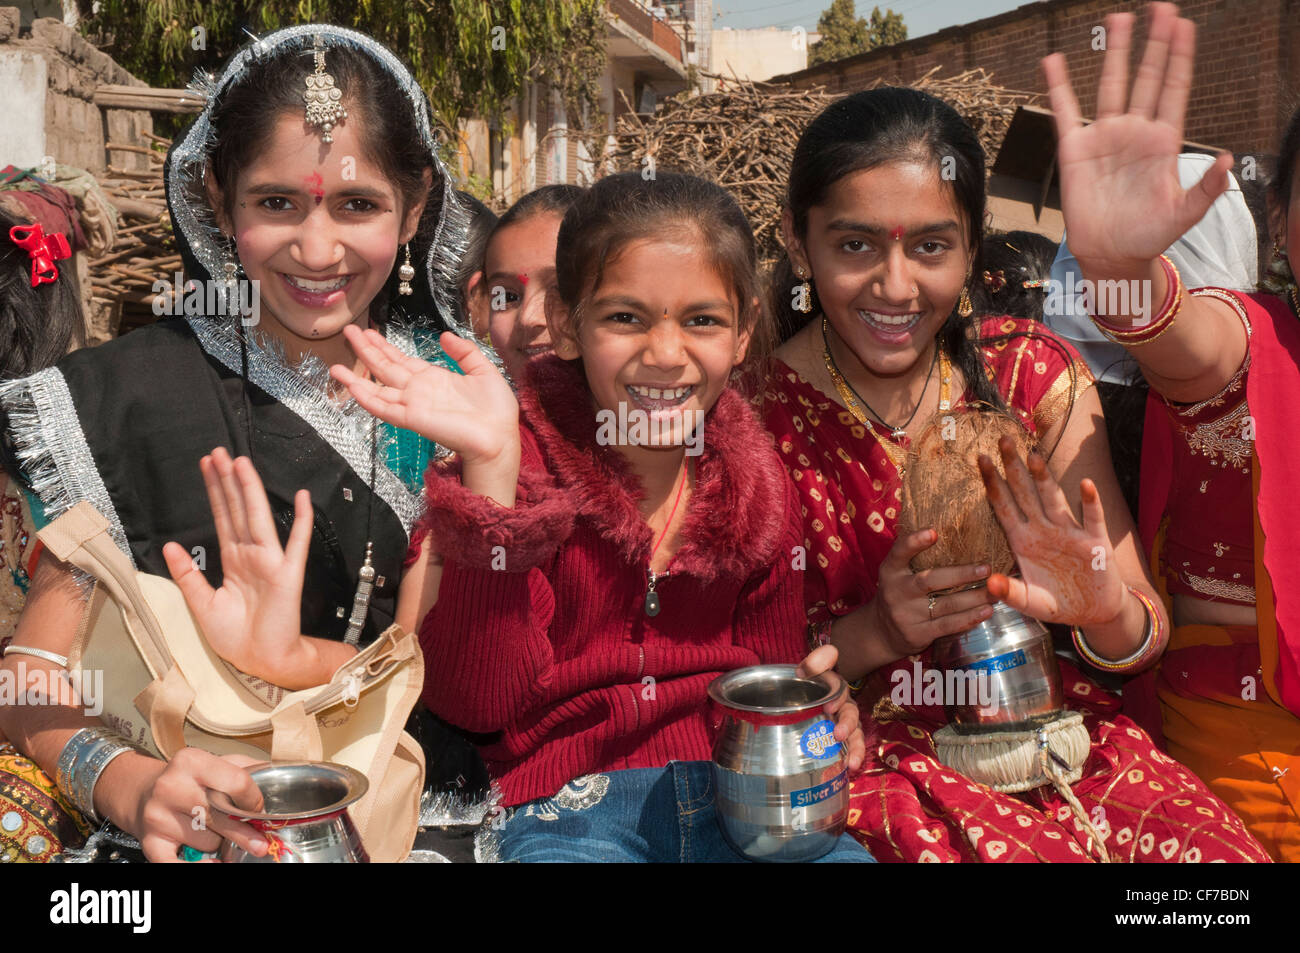 Girls taking part in a procession in Bhuj, Kutch, Gujarat, India - Stock Image